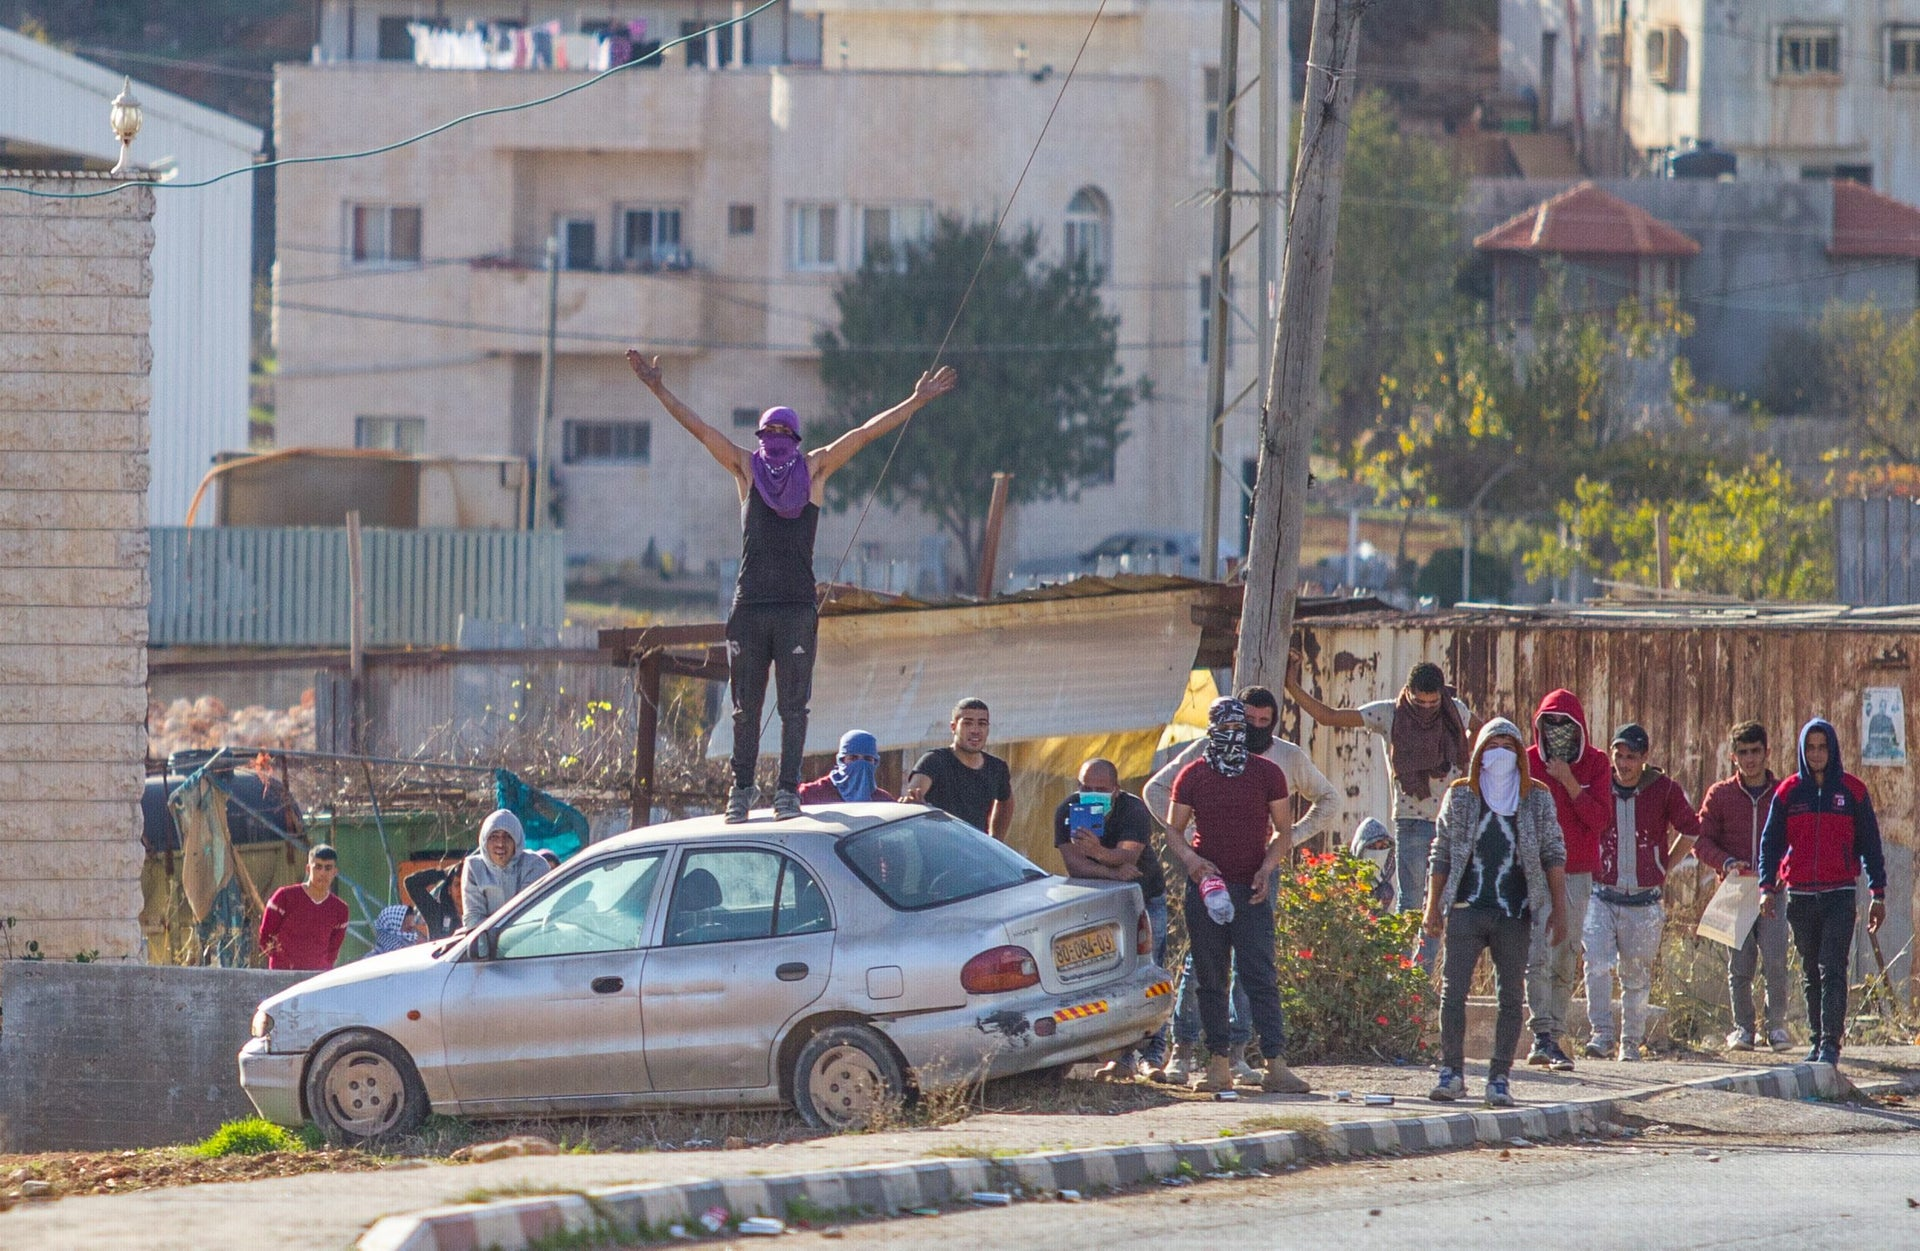 Riots in the Palestinian village of Qusra, near the settlement of Migdalim, in the West Bank, November 30, 2017.